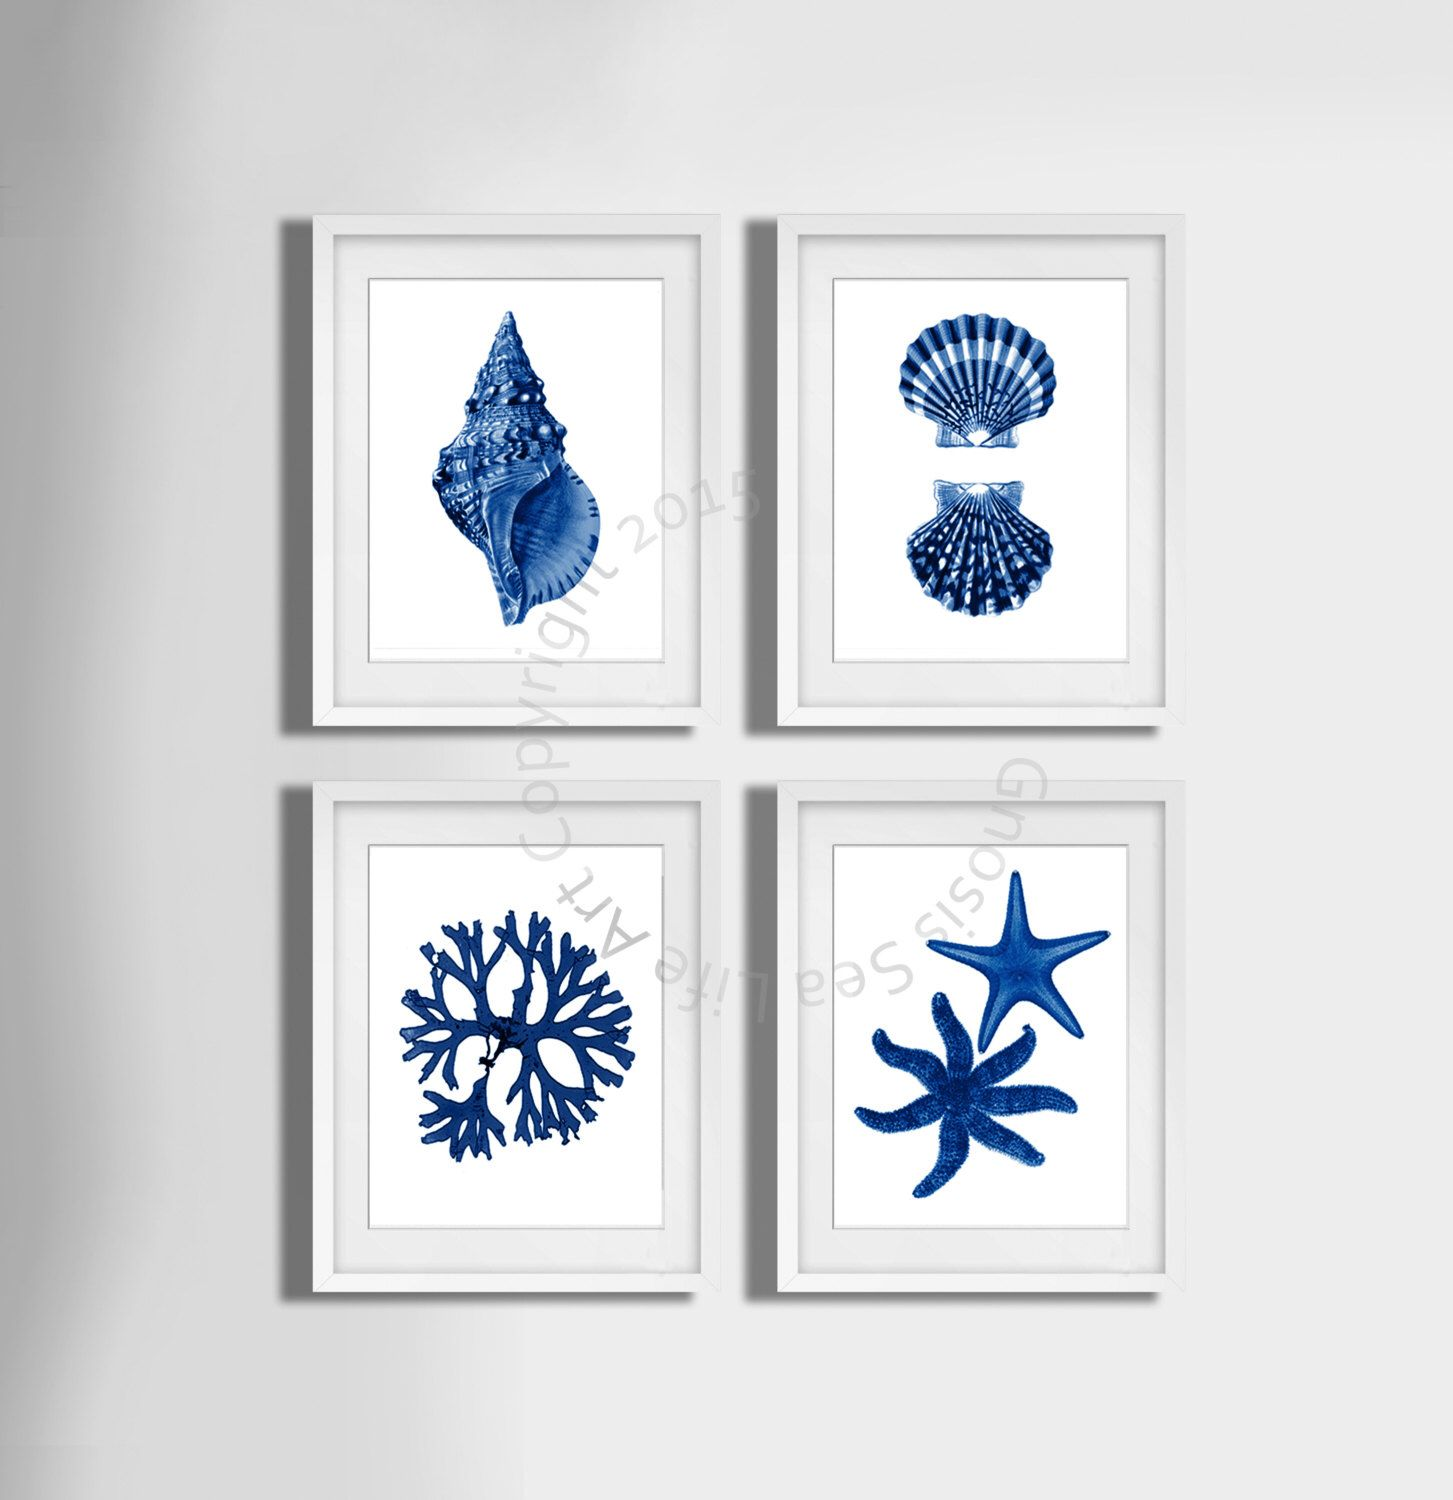 Coastal wall decor navy blue wall art set of 4 beach decor seashells starfish coastal wall art beach bathroom wall decor